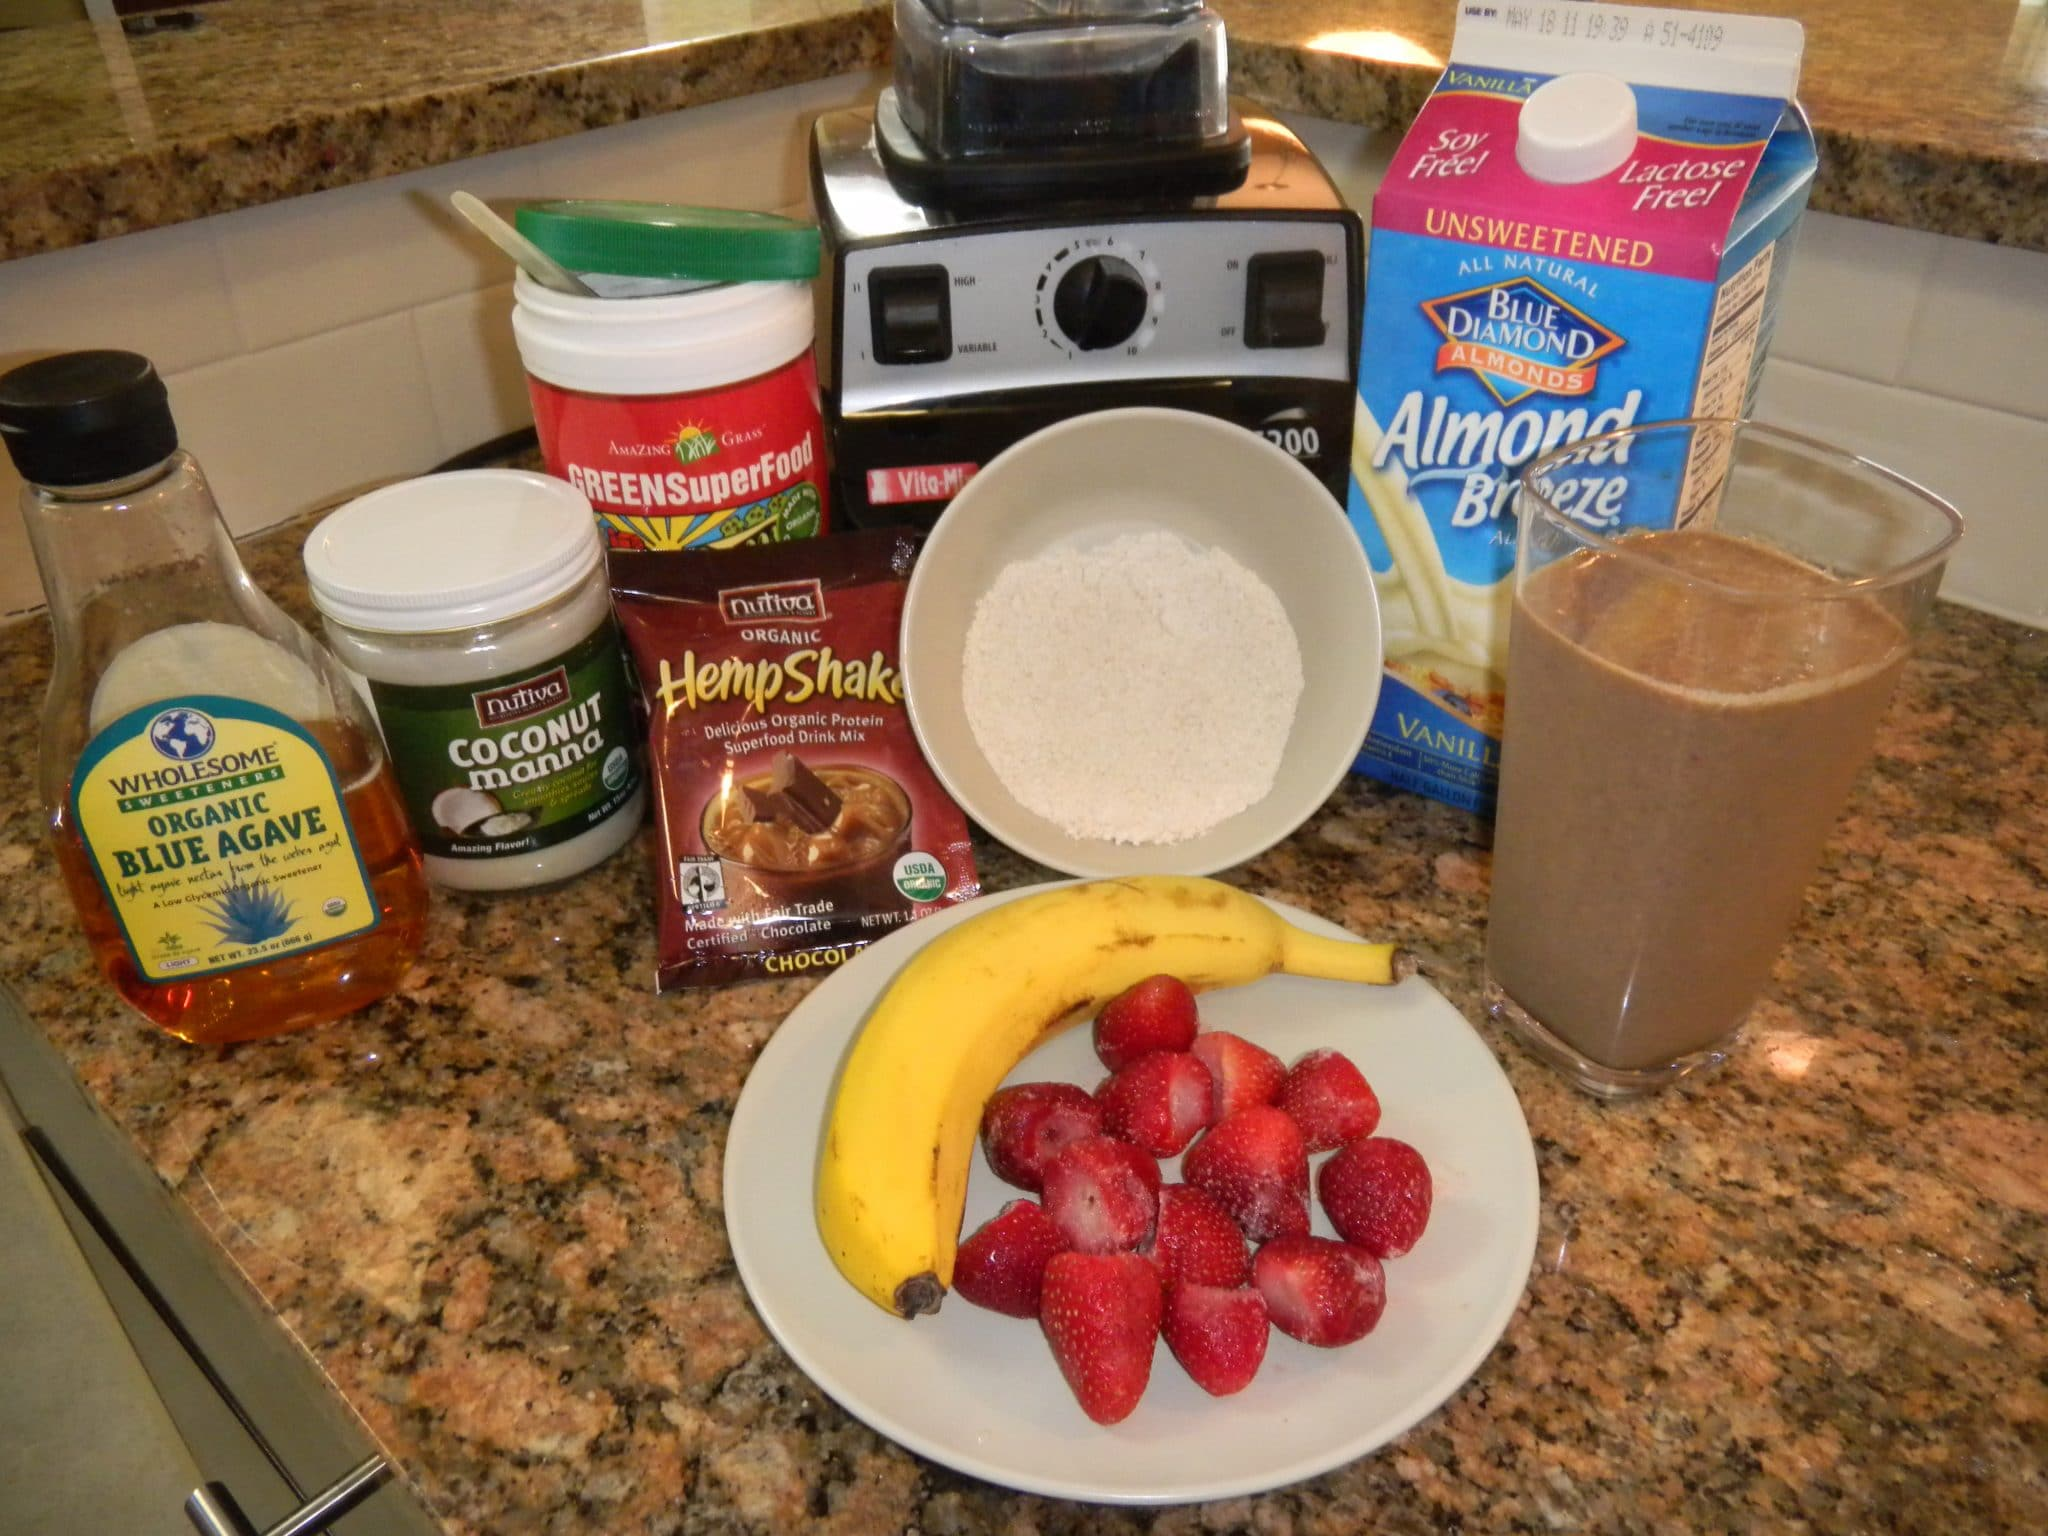 Ingredients for a Chocolate Strawberry Smoothie